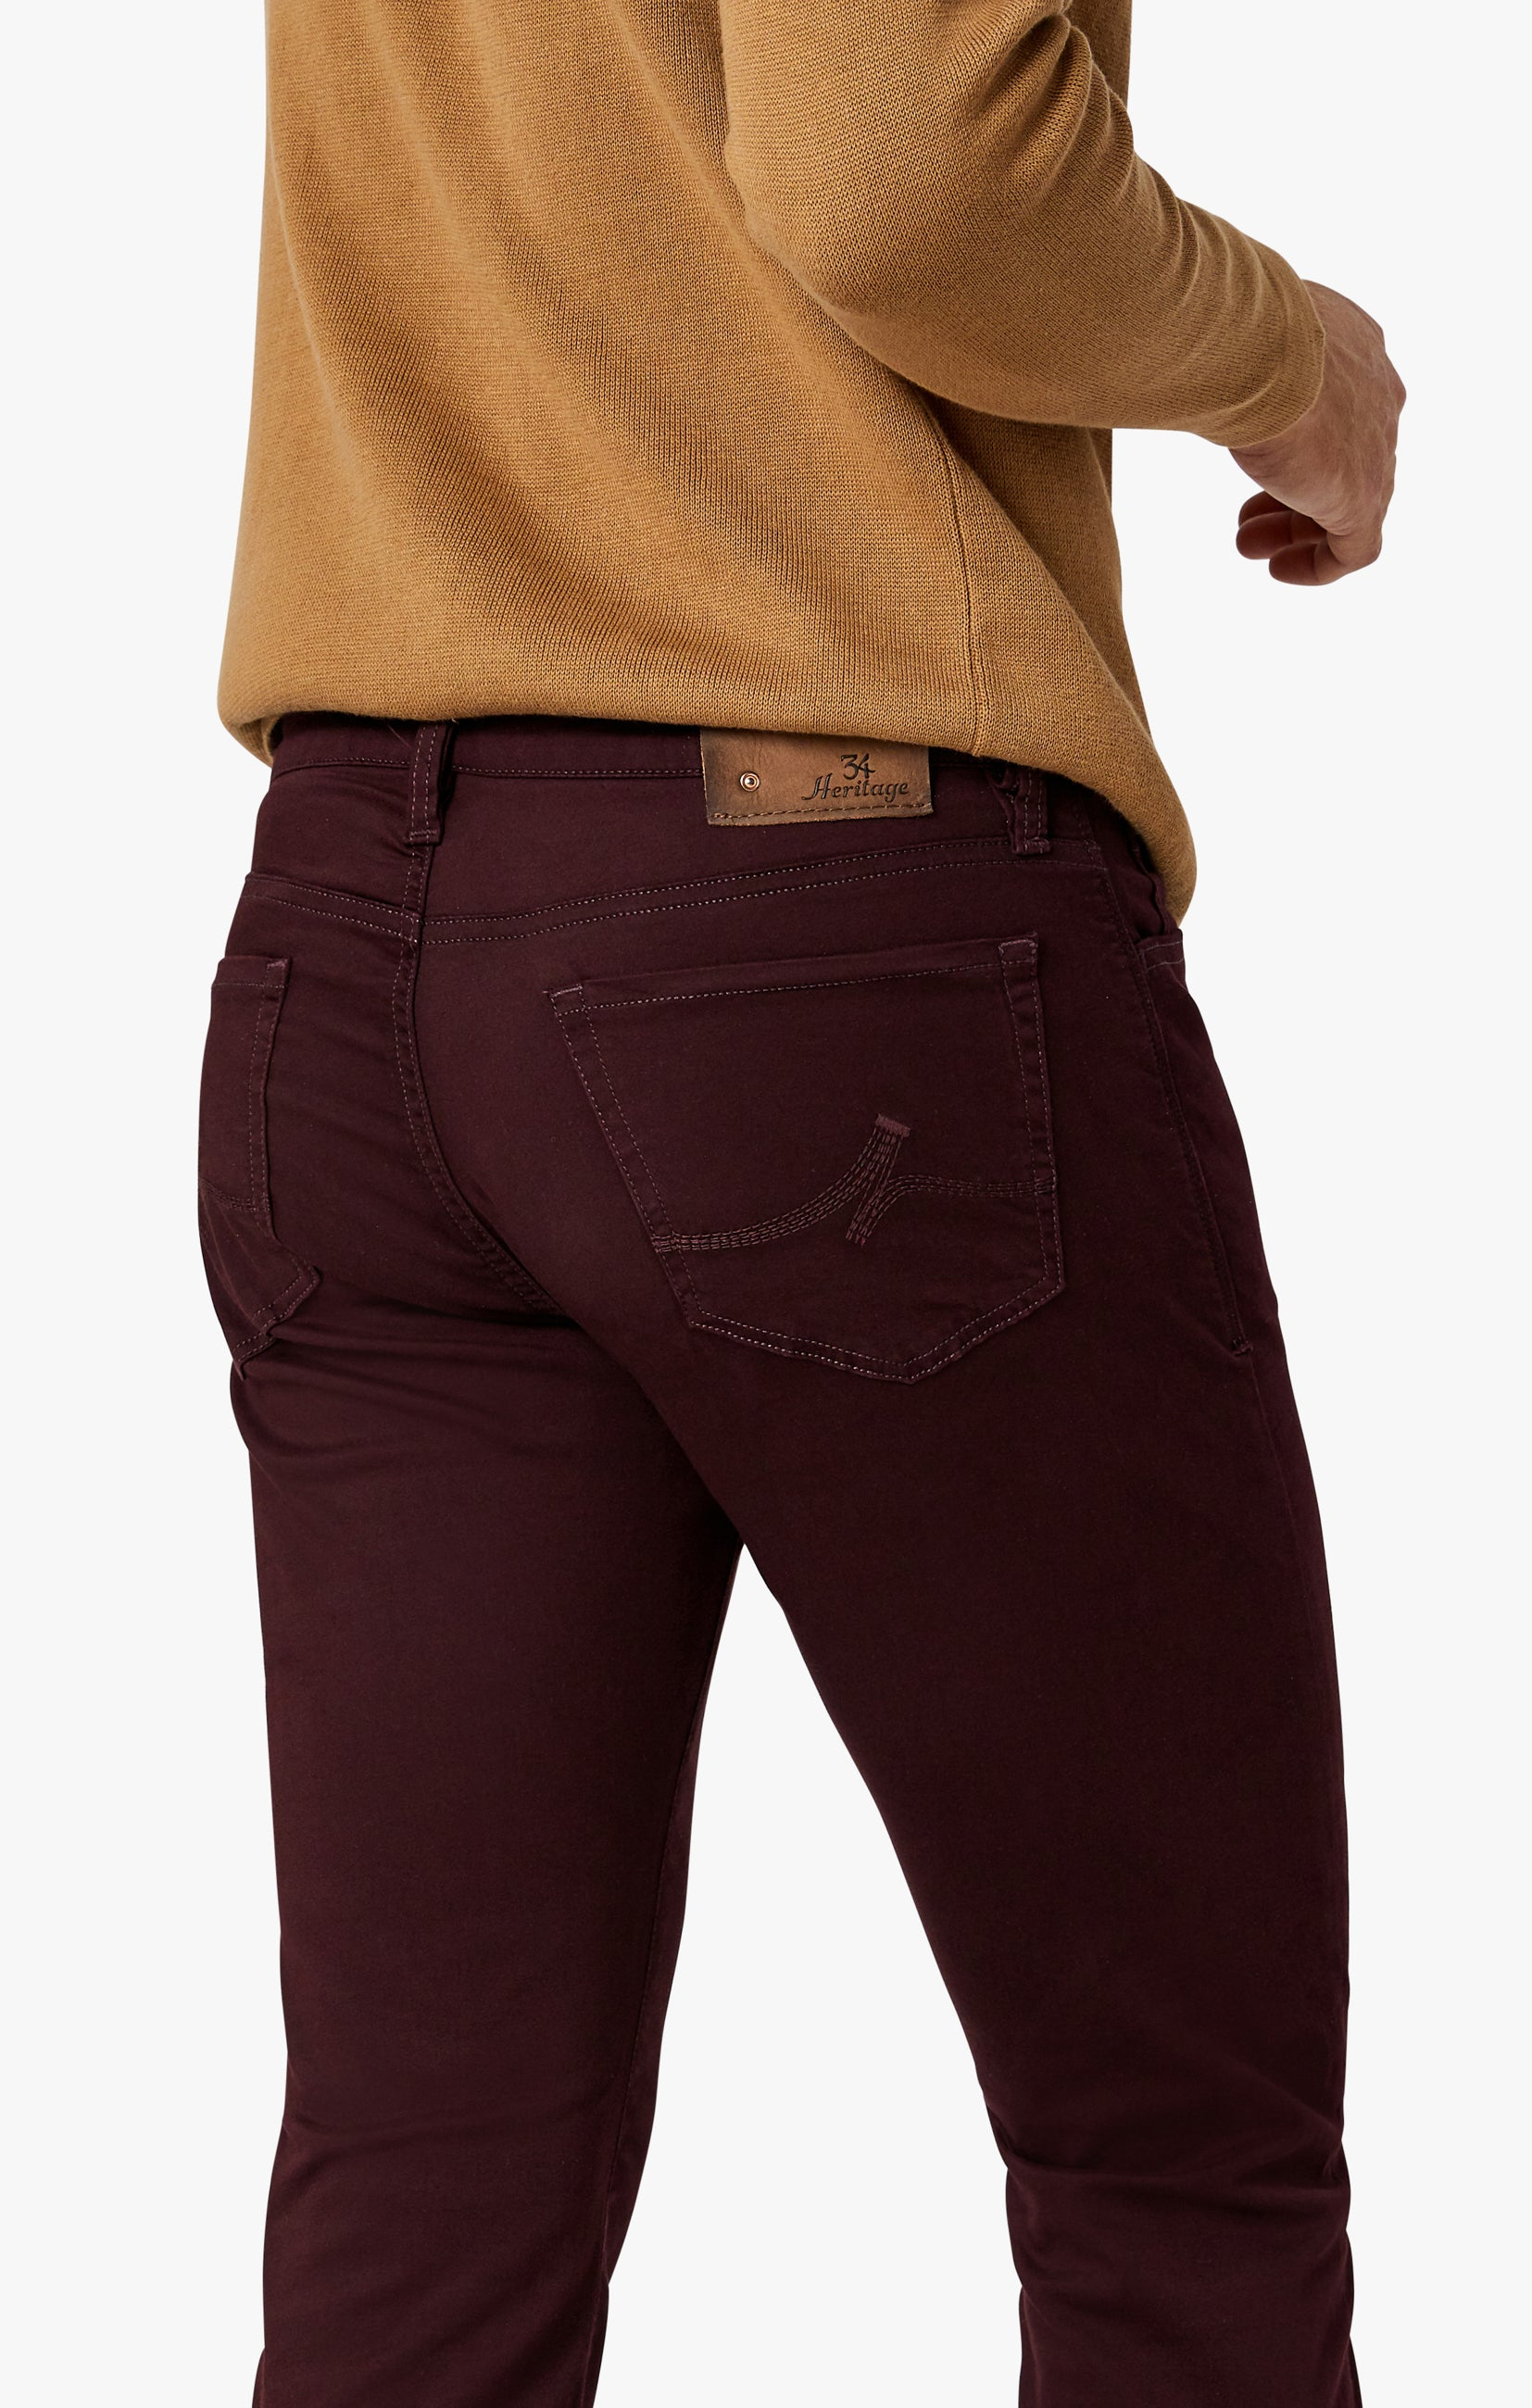 Charisma Relaxed Straight Pants in Wine Twill Image 4